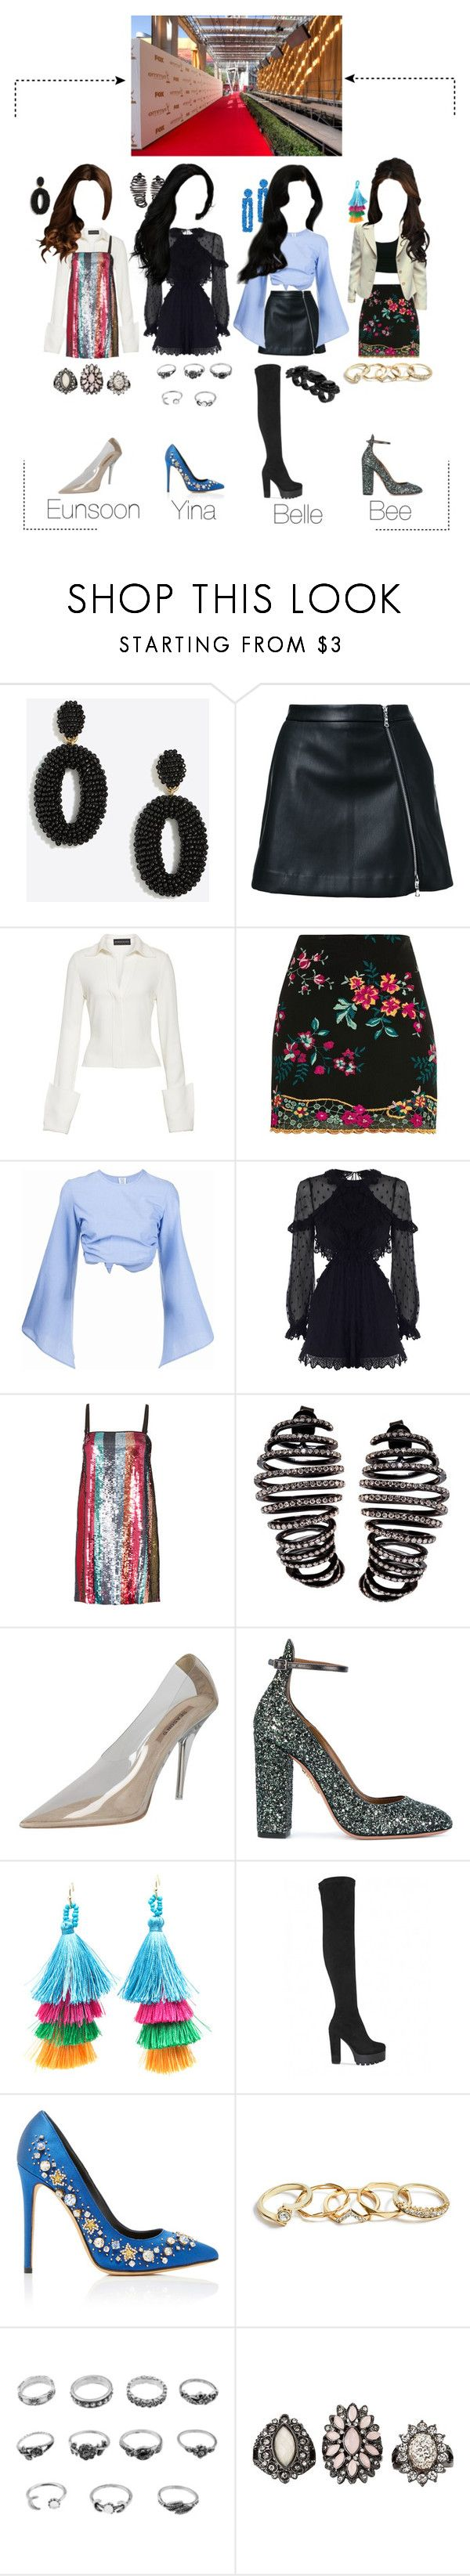 """""""[BCMF] Madam Pearl at arrivals line in Bang Charity"""" by official-madampearl ❤ liked on Polyvore featuring Guild Prime, Brandon Maxwell, Topshop, Rosie Assoulin, Zimmermann, Tanya Taylor, Plukka, Sachin + Babi, Aquazzura and GUESS"""